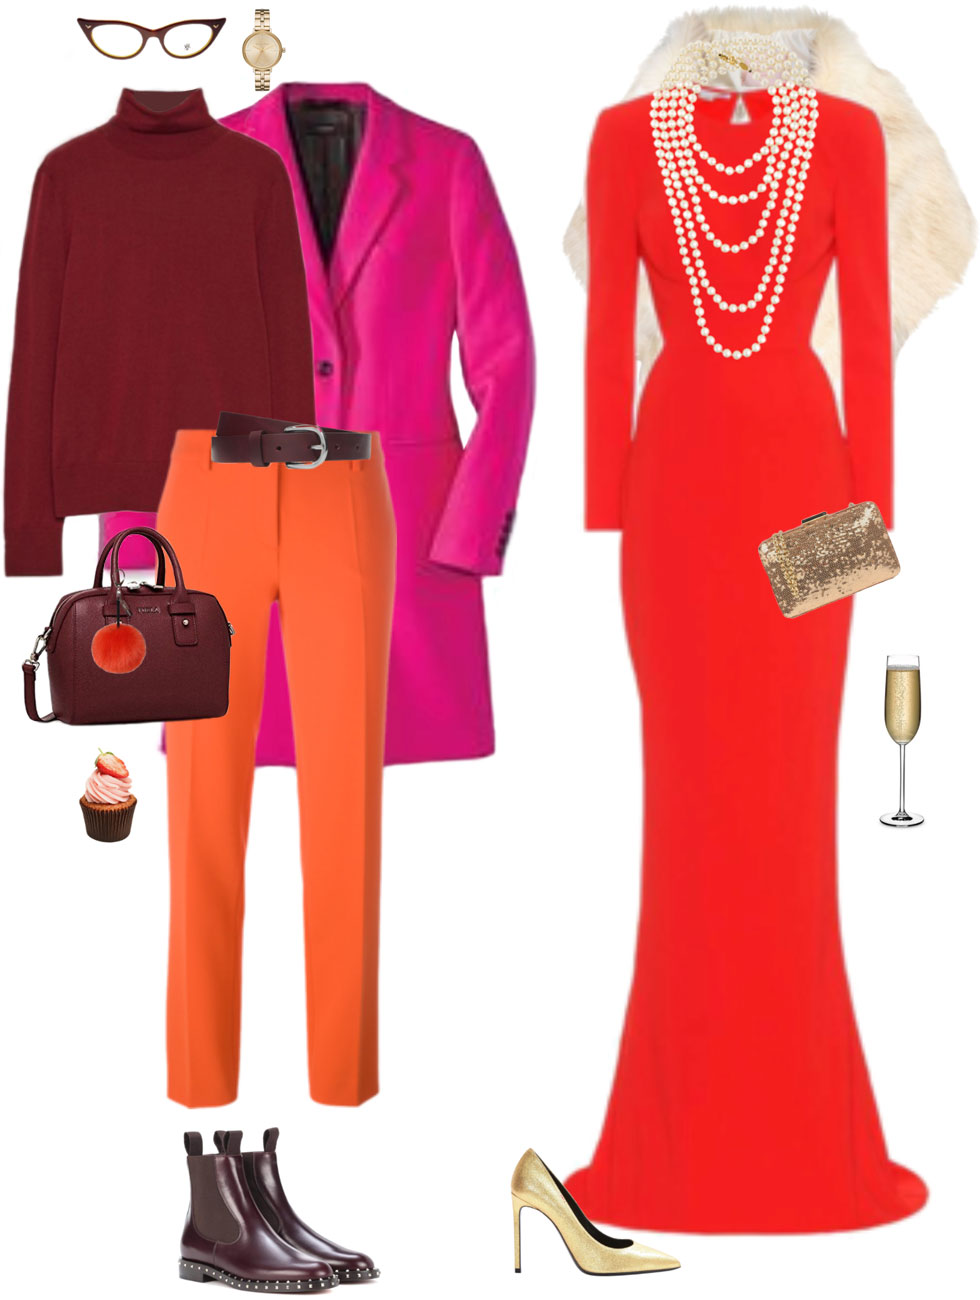 Ensemble Style Advice - The Bold and the Beautiful